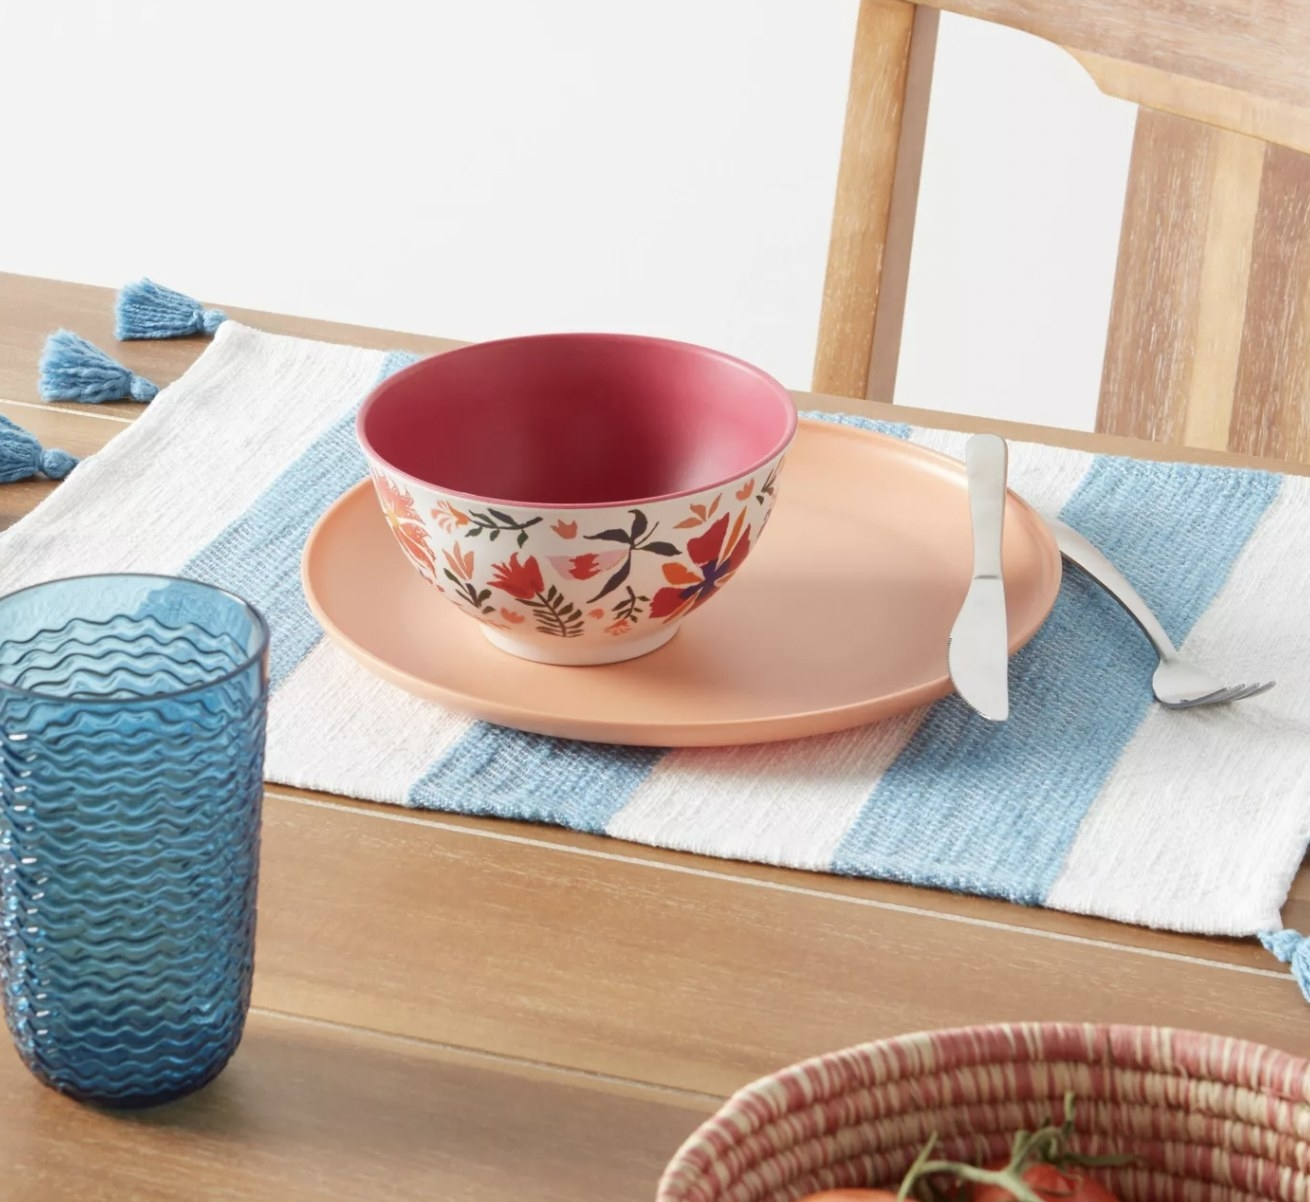 a place setting sitting on top of a blue and white striped placemat with tassles